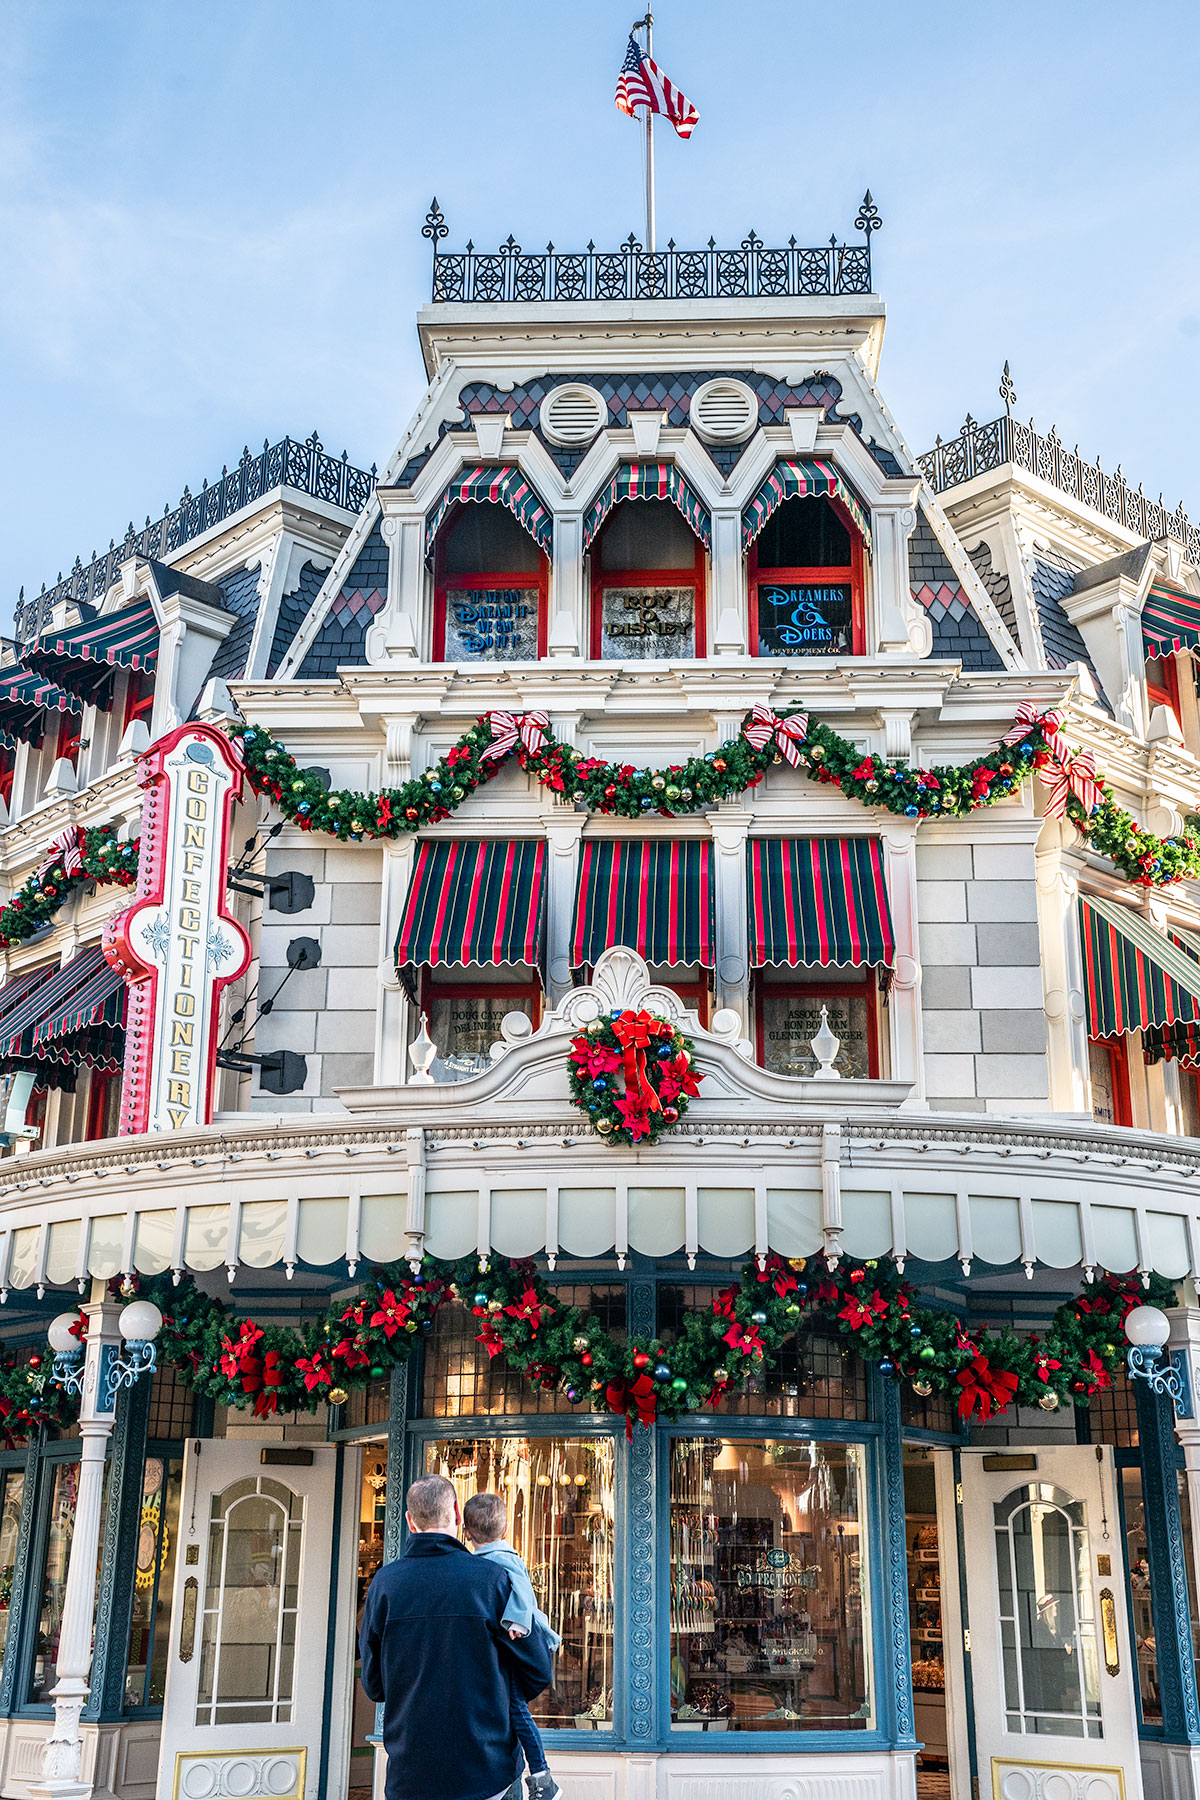 Main-Street-Magic-Kingdom-at-Christmas